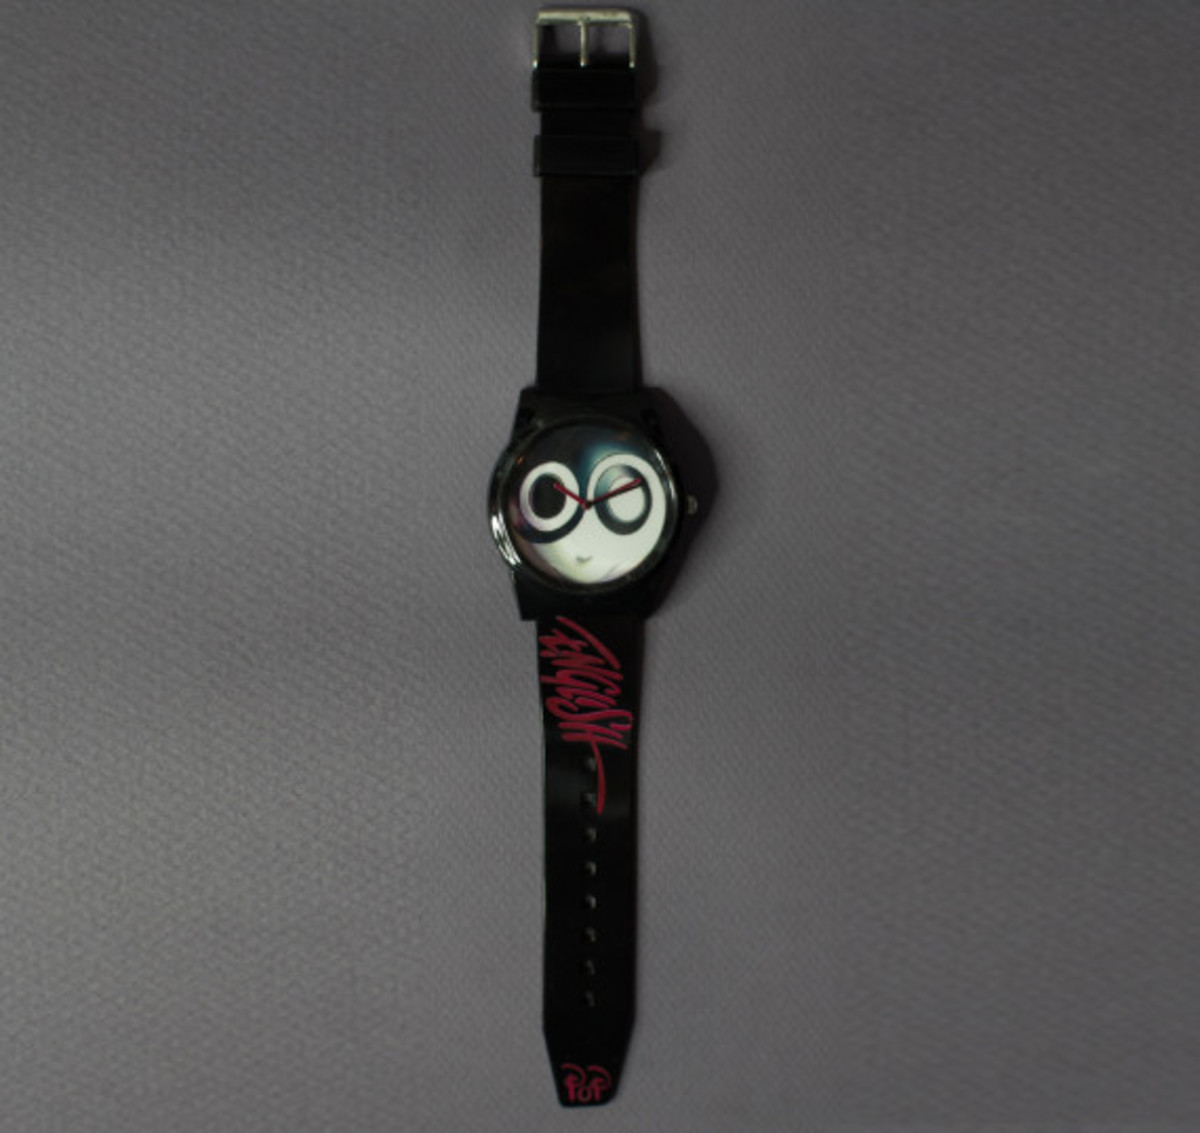 flud-ron-english-fall-2013-watch-collection-02